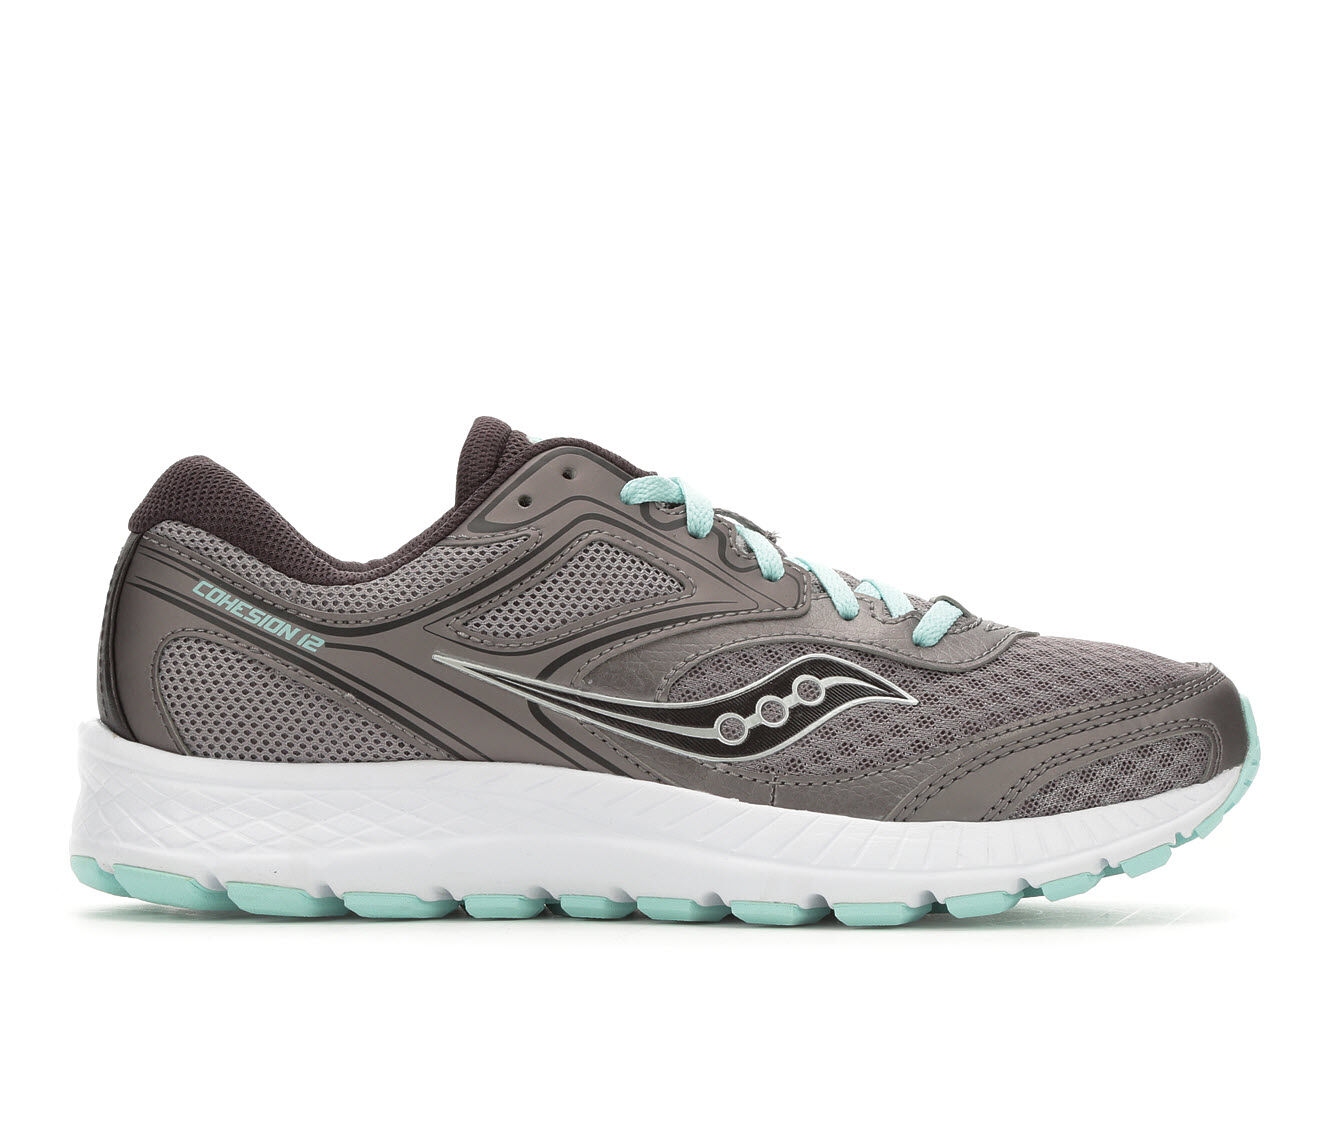 Women's Saucony Cohesion 12 Running Shoes Grey/Turq